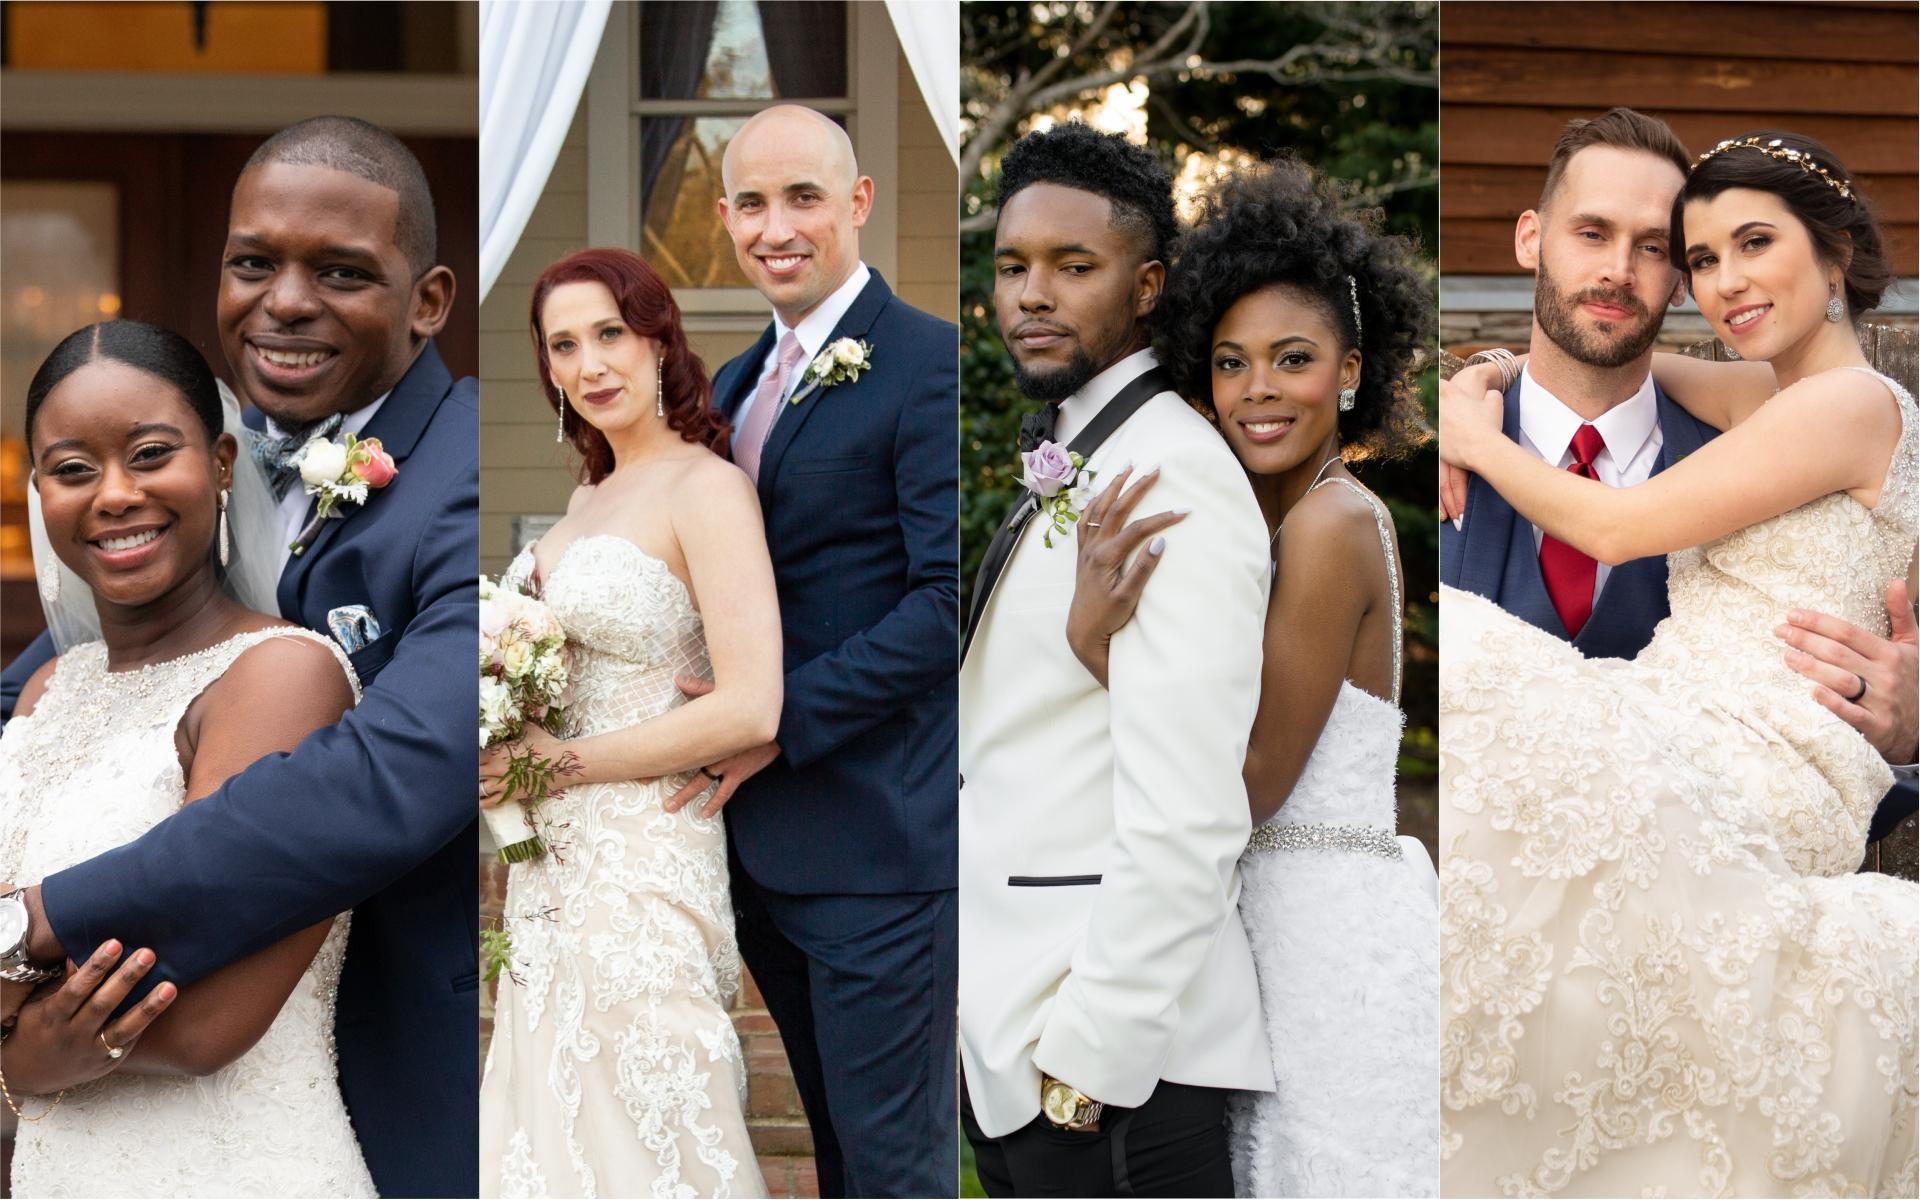 Married at First Sight Season 9 finale